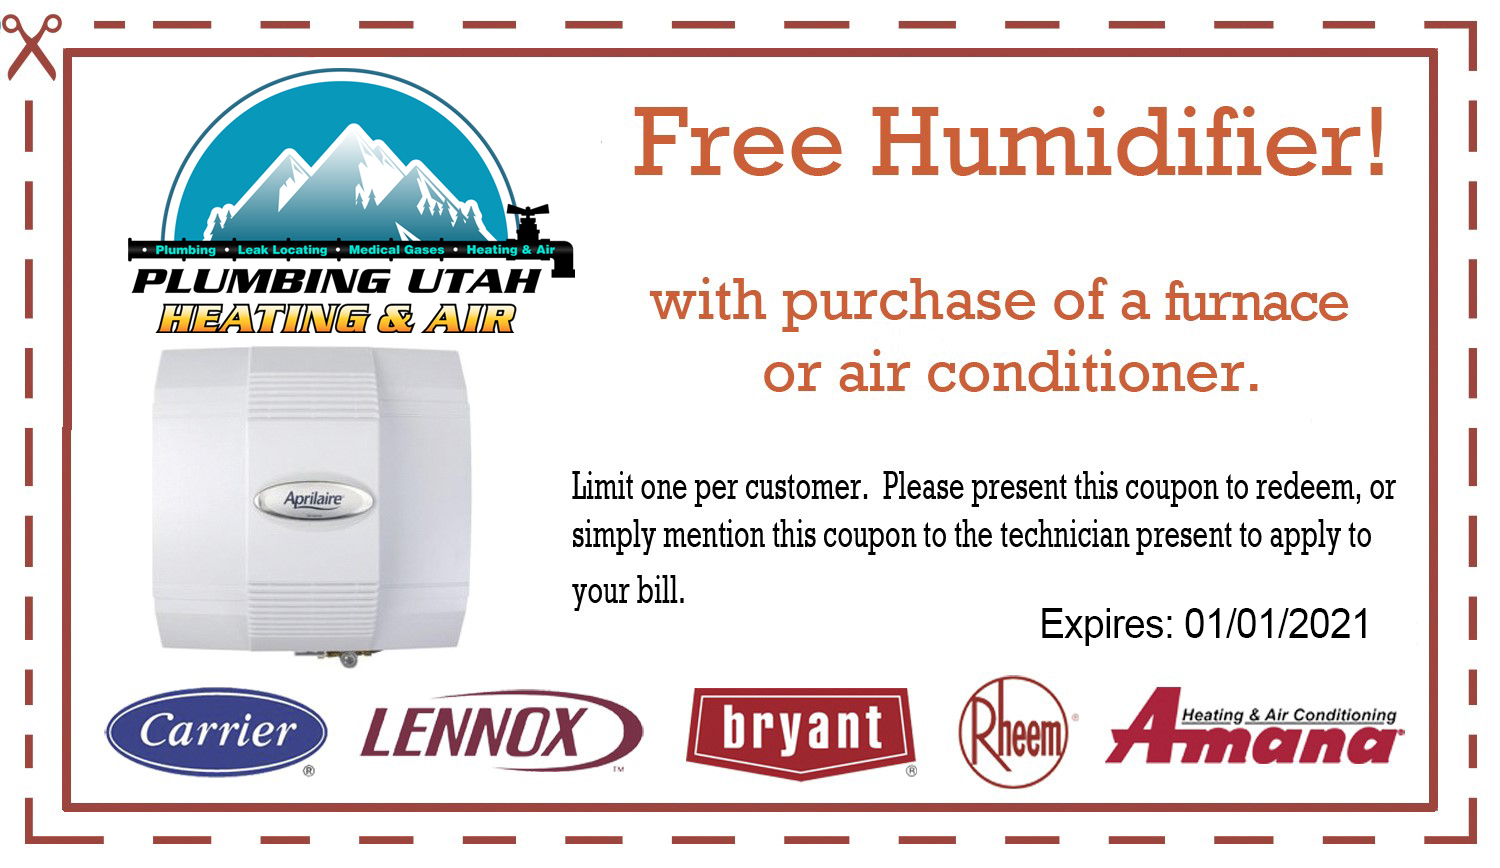 plumbing-utah-hvac-coupon-free-humidifier